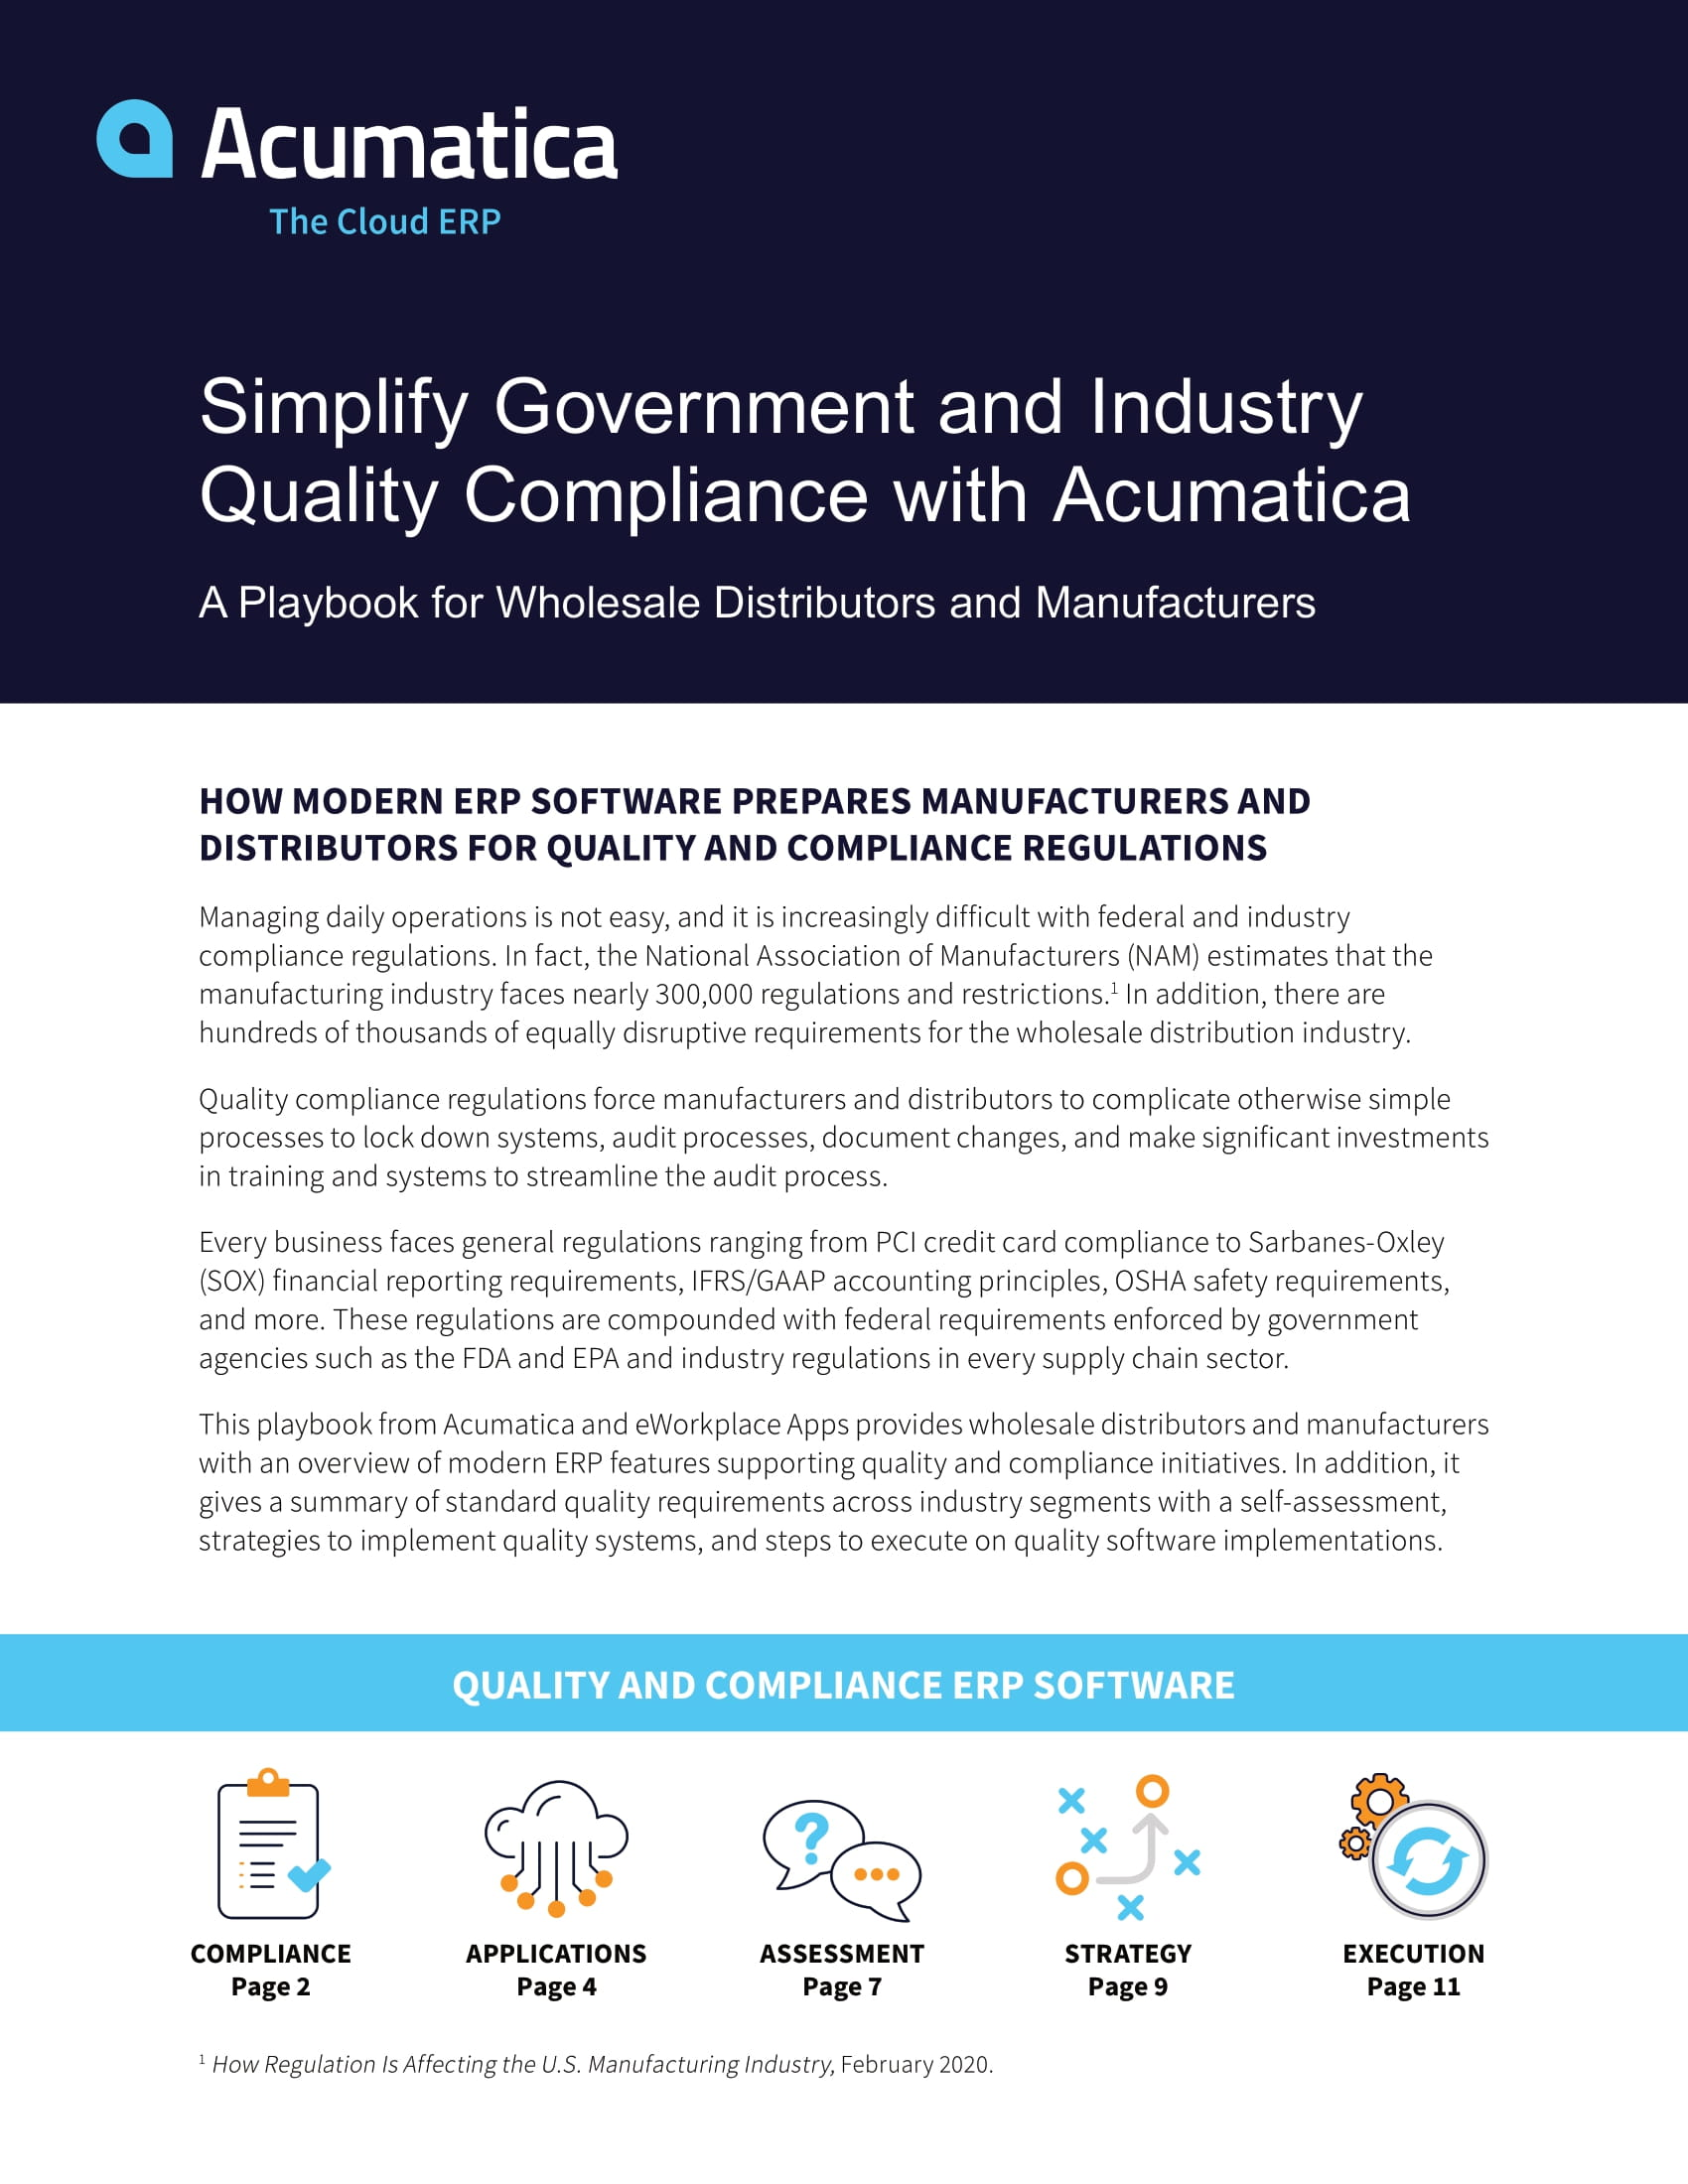 Quality Compliance Software Made Simple